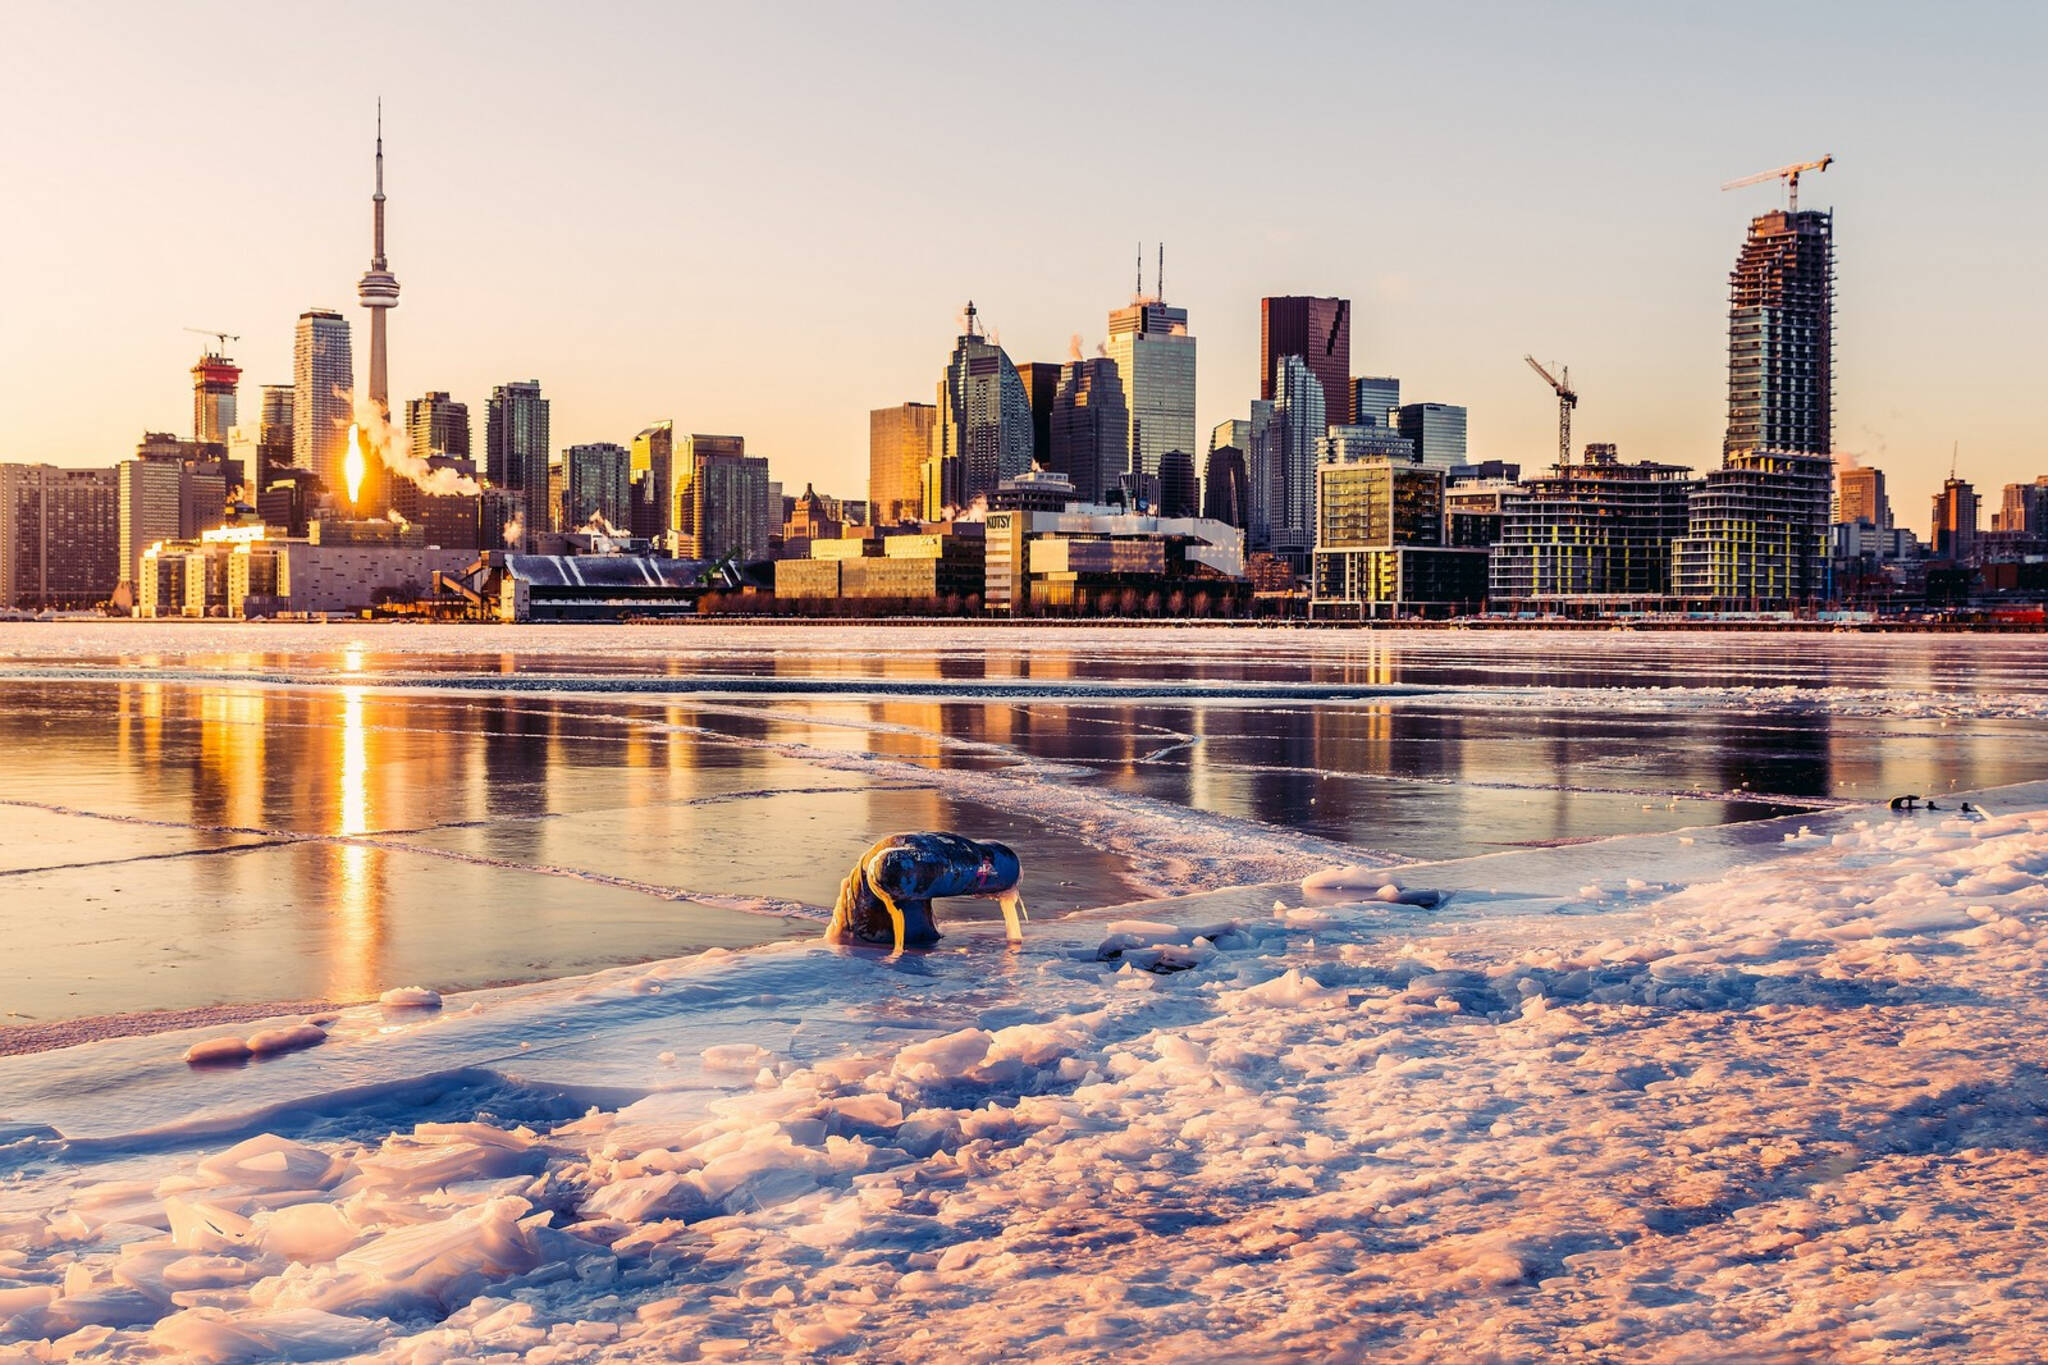 toronto winter weather